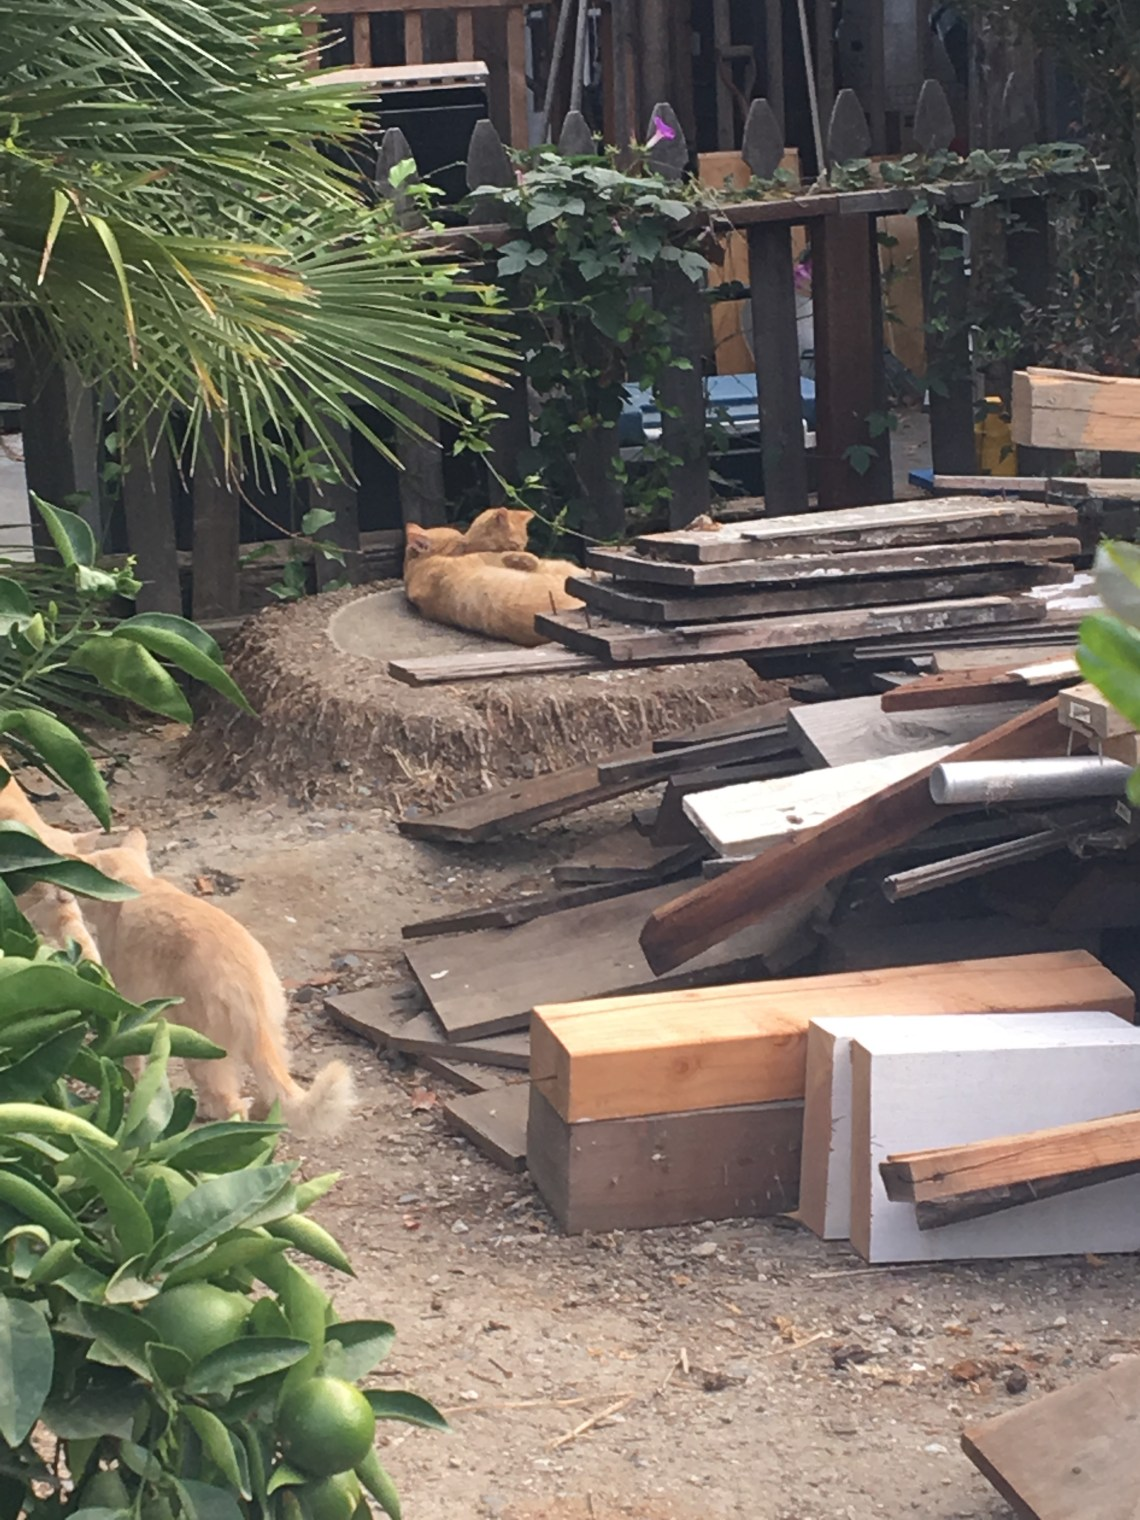 Los Rios colony cats can be seen lounging on the Historical Society's property. Photo: Courtesy of Suelyn Ritsema